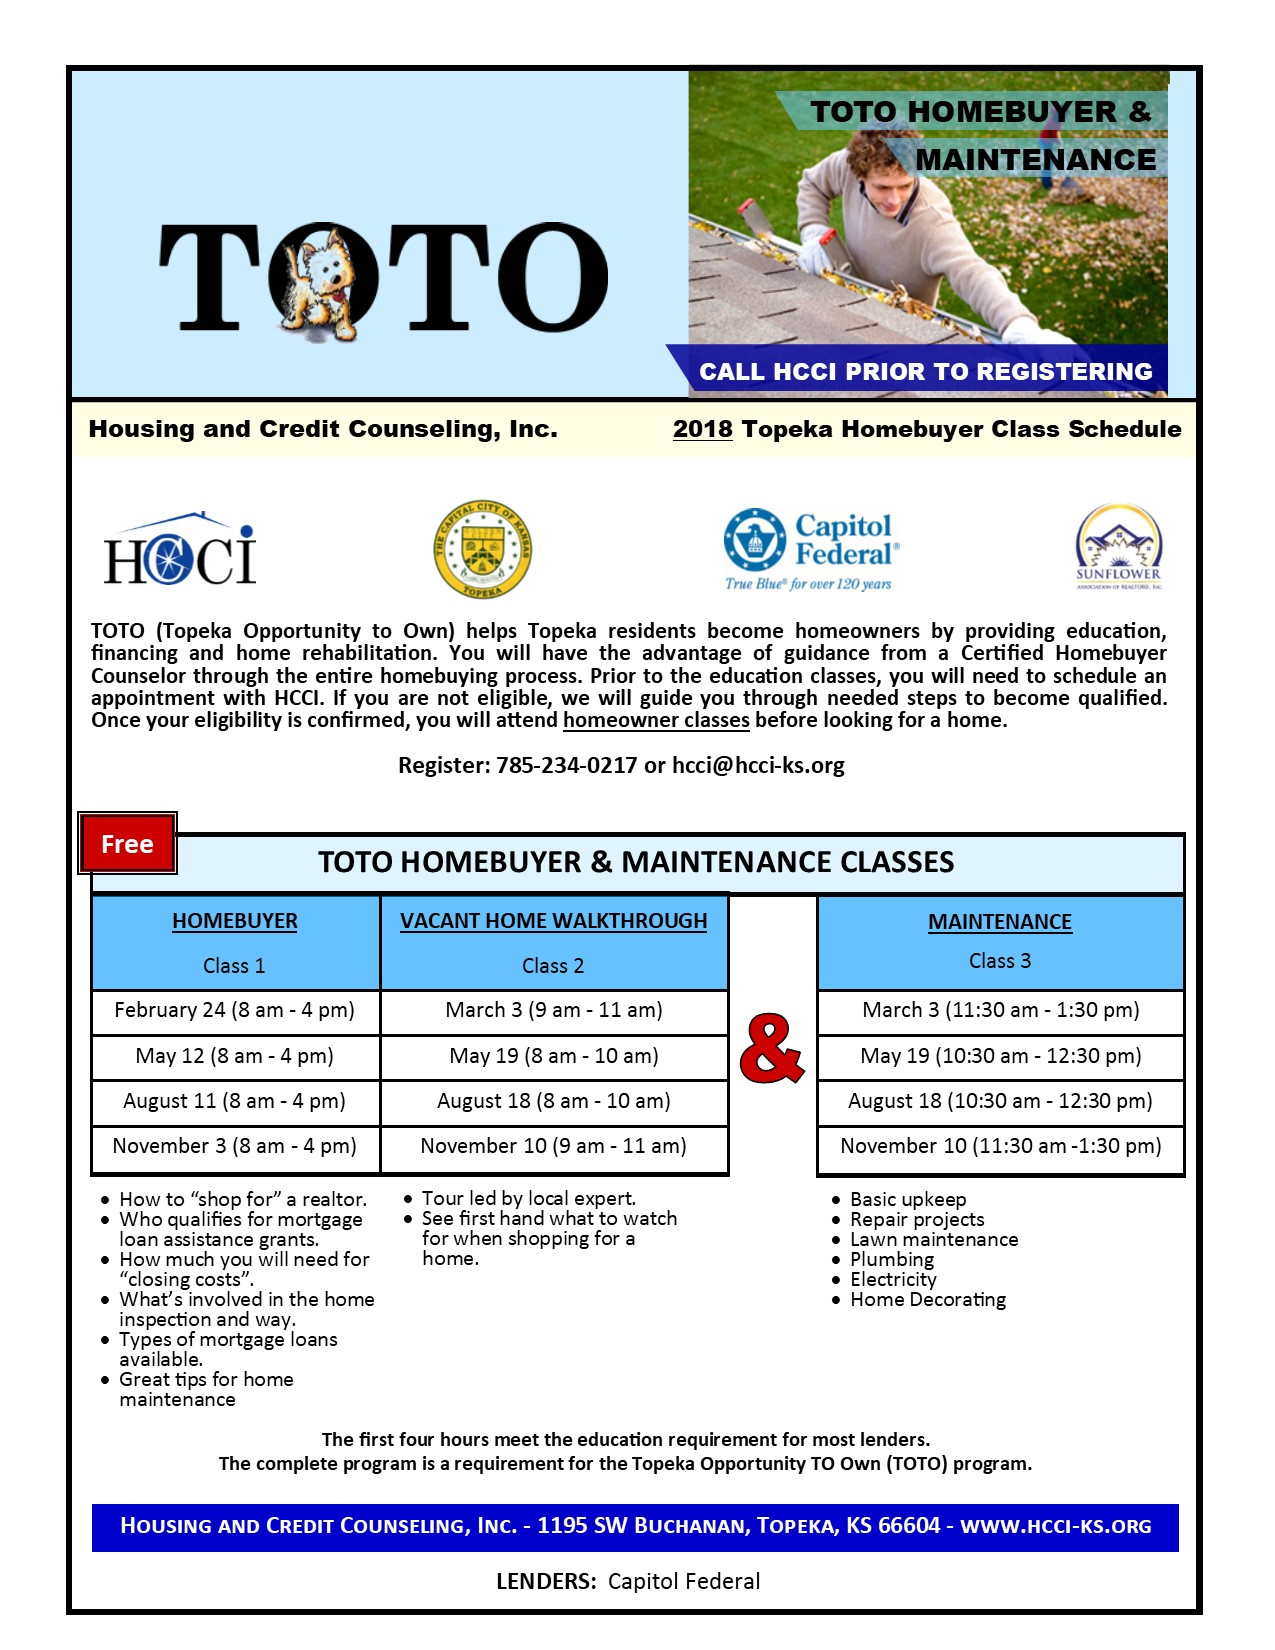 TOTO Homebuyer Classes – Housing & Credit Counseling, Inc.